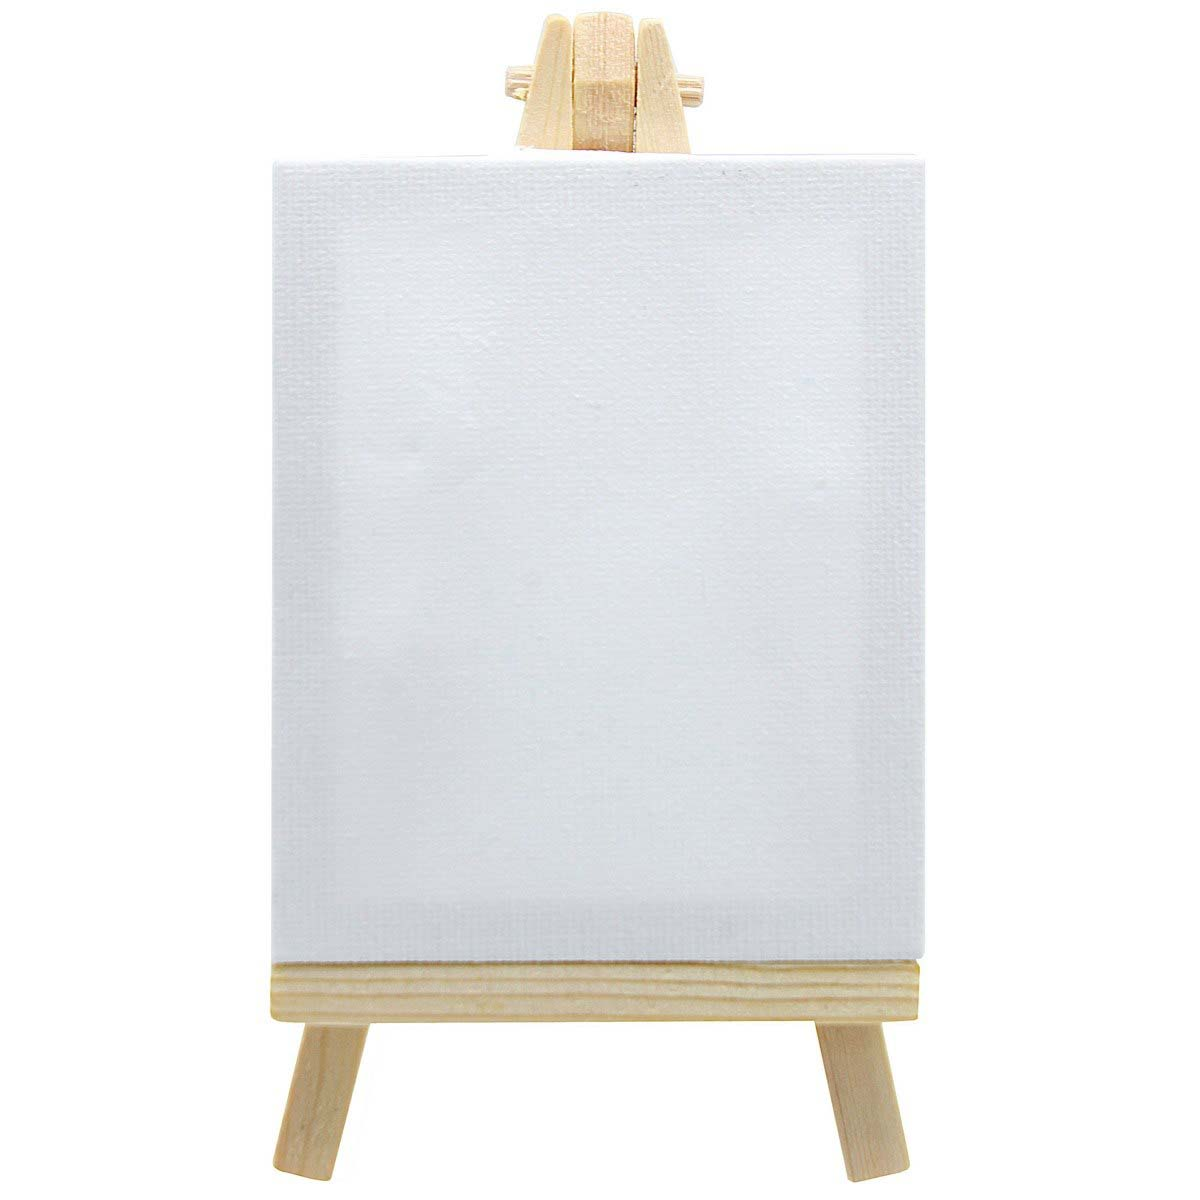 Mini Stretched Canvas With Easel (3x4 Inch)